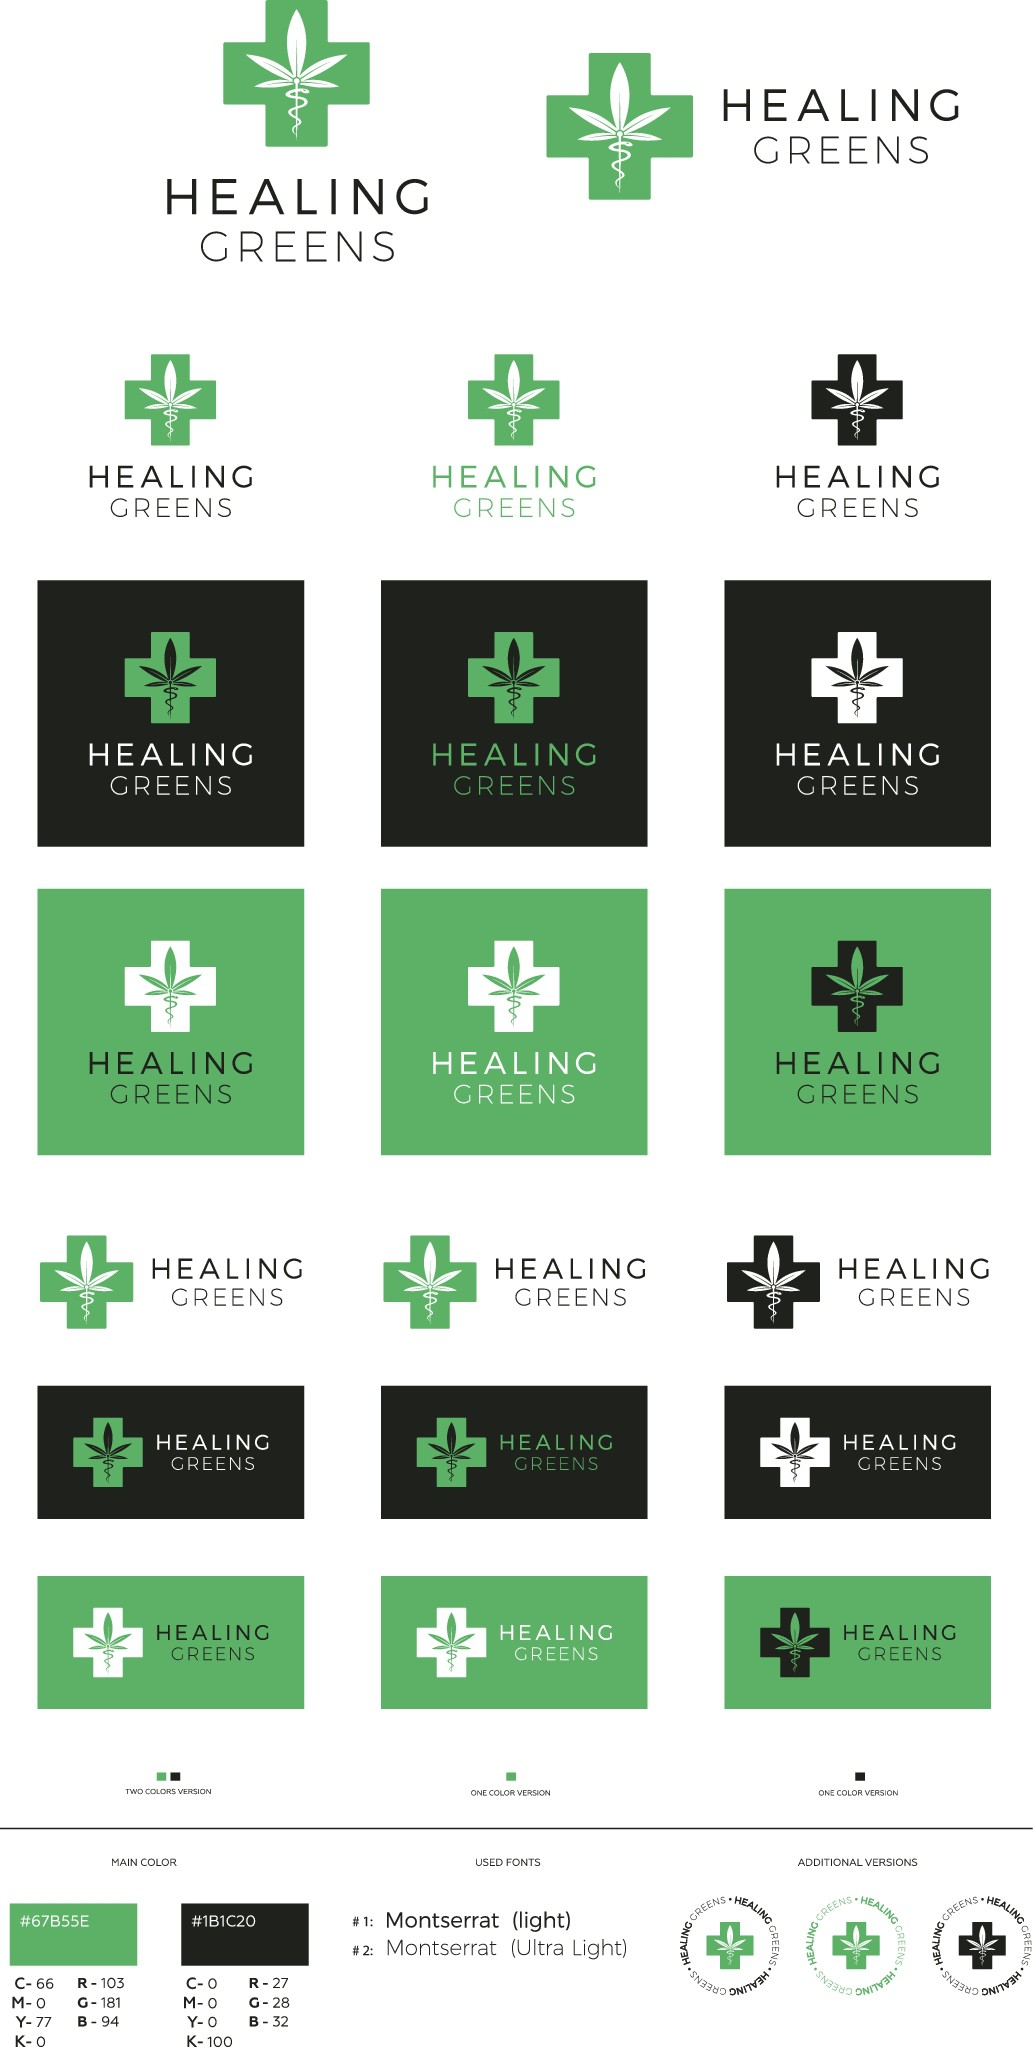 Healing Greens would like to see a great combination mark logo wich combines the healing capabilities of the earth,plant